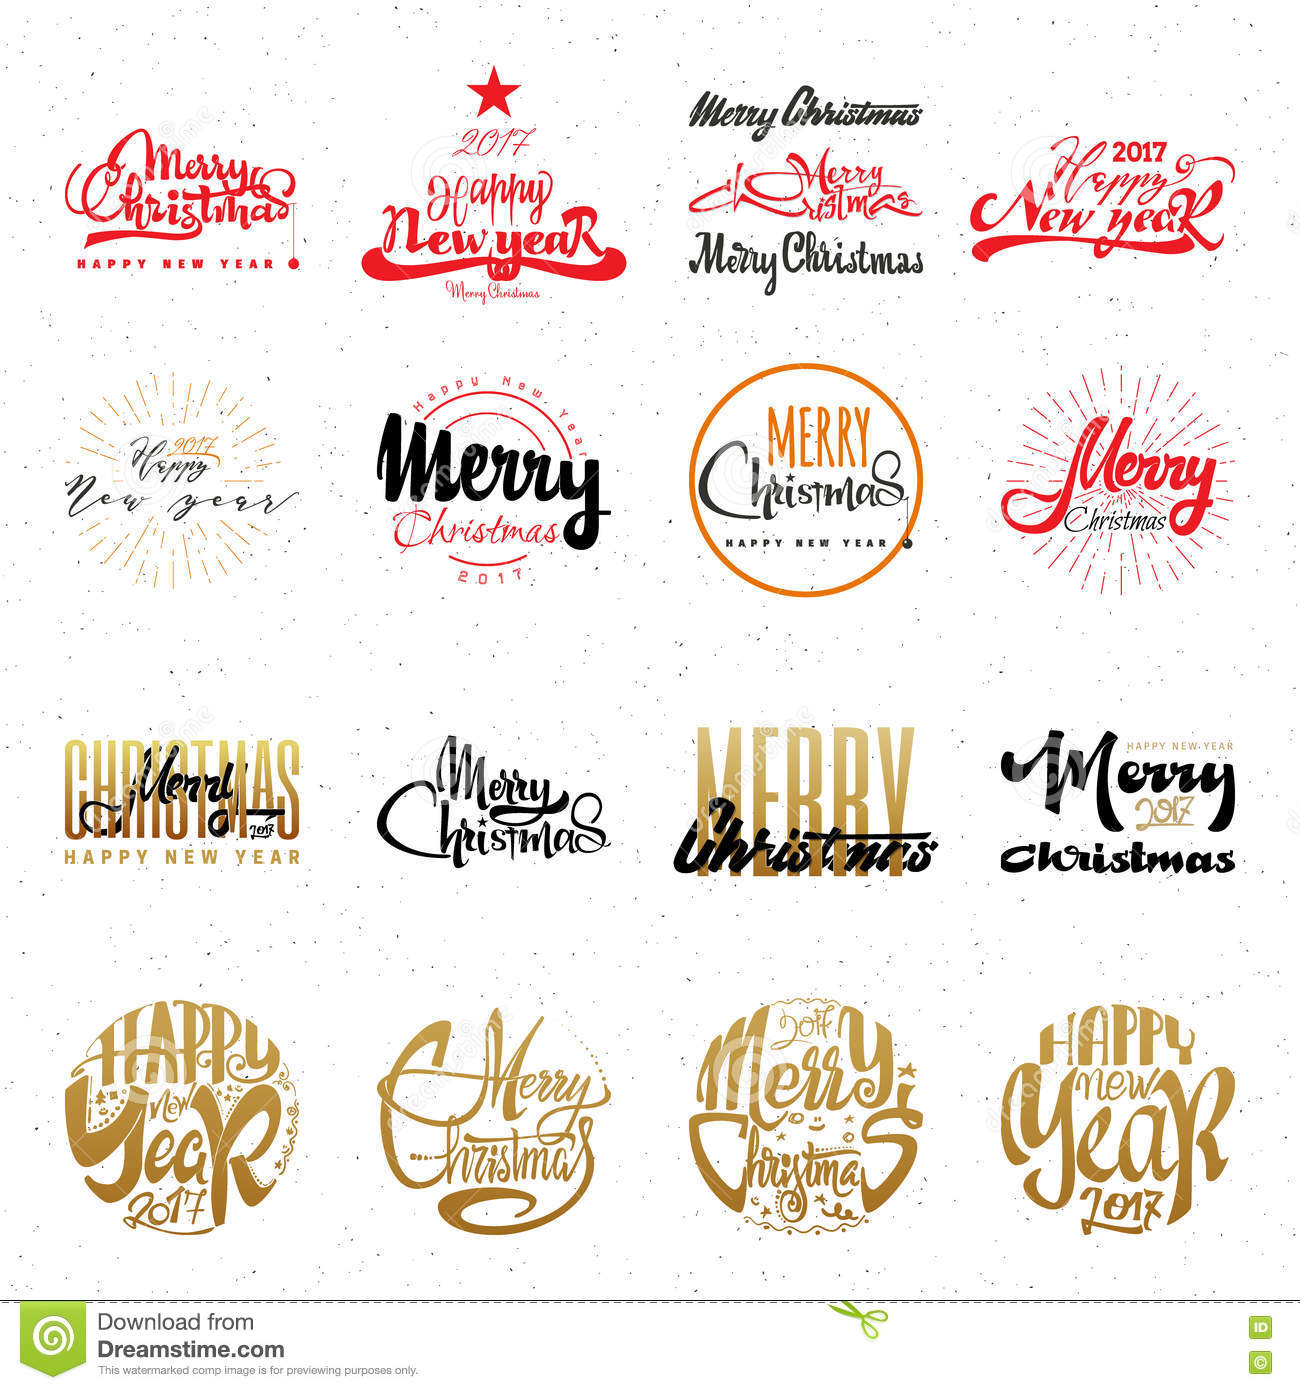 Happy New Year Greeting Letter